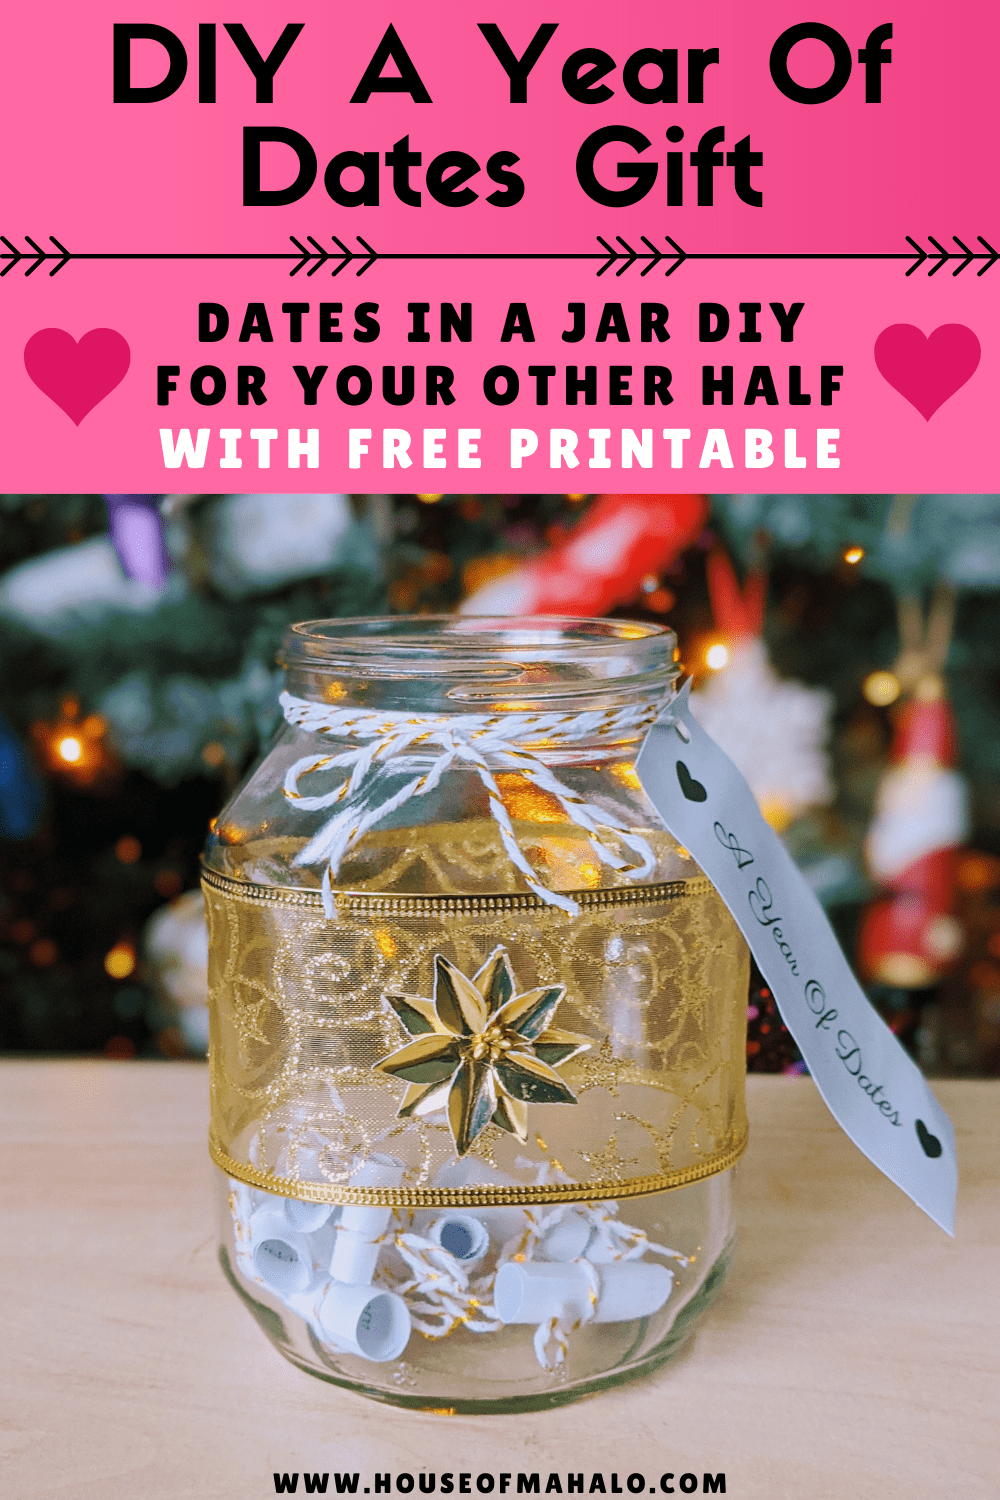 DIY A Year Of Dates Gift